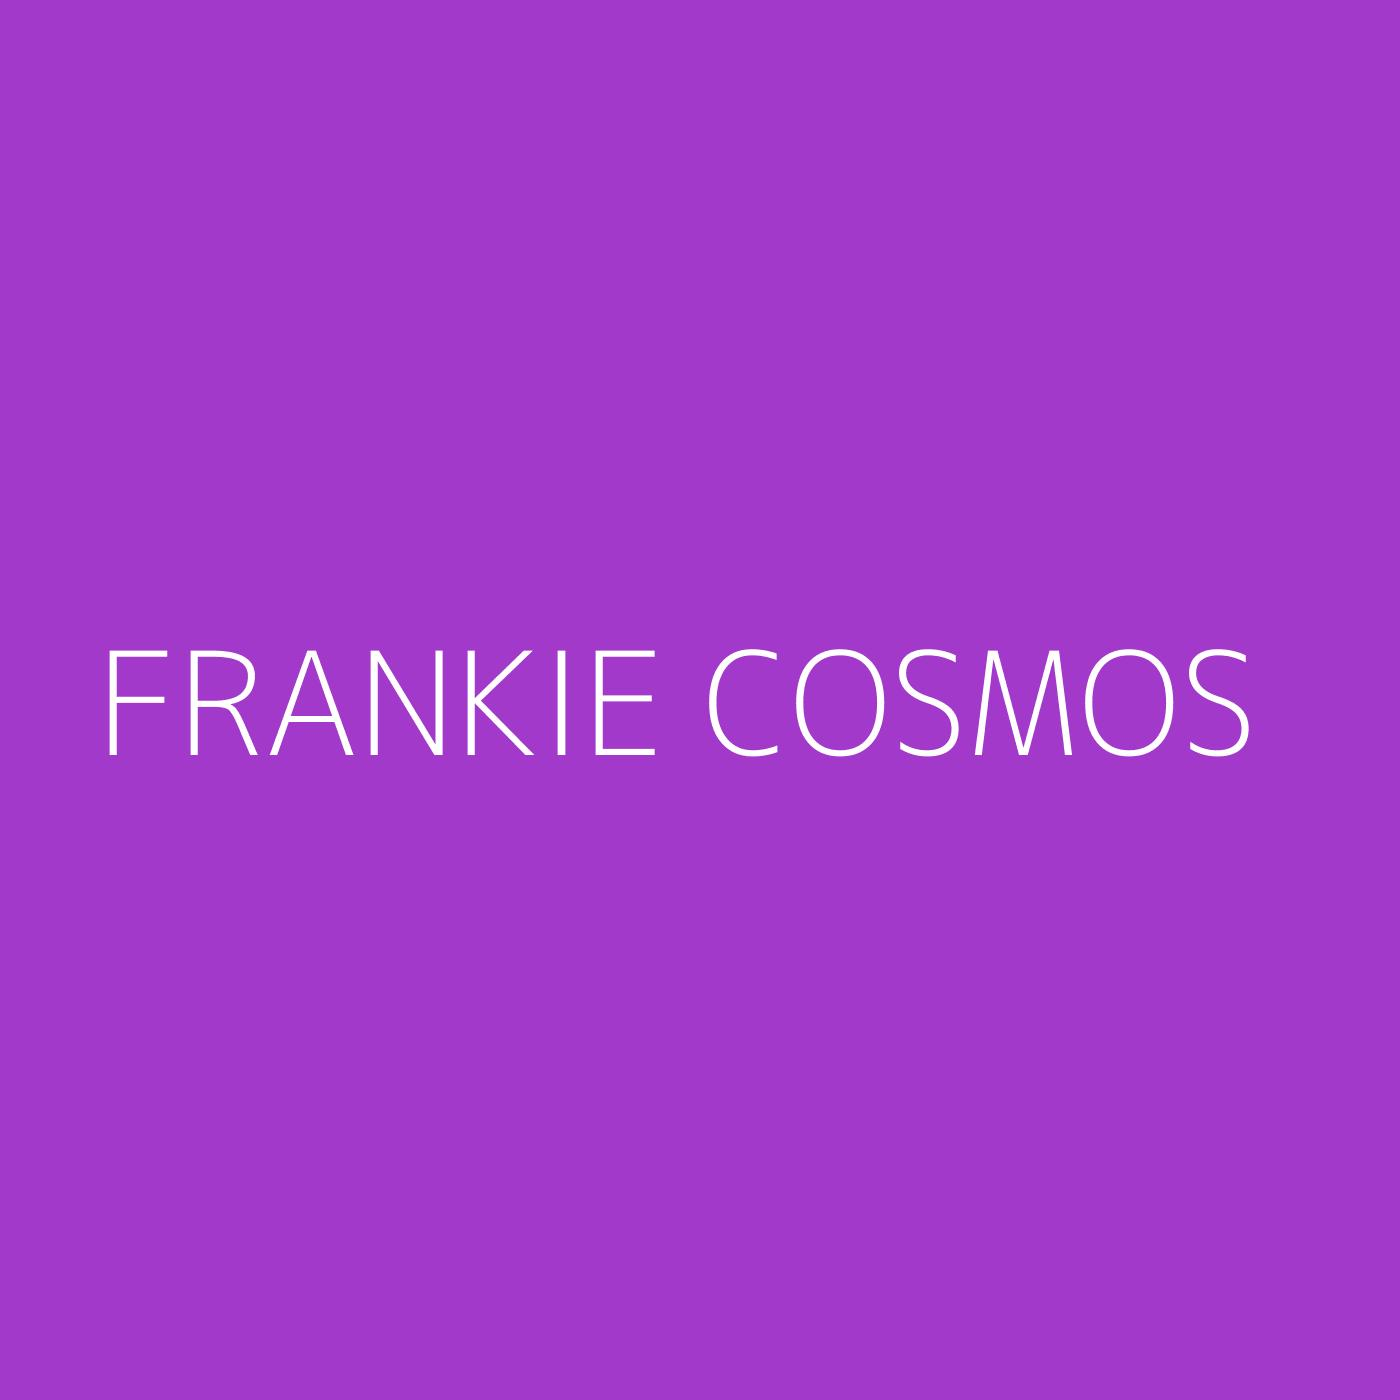 Frankie Cosmos Playlist Artwork